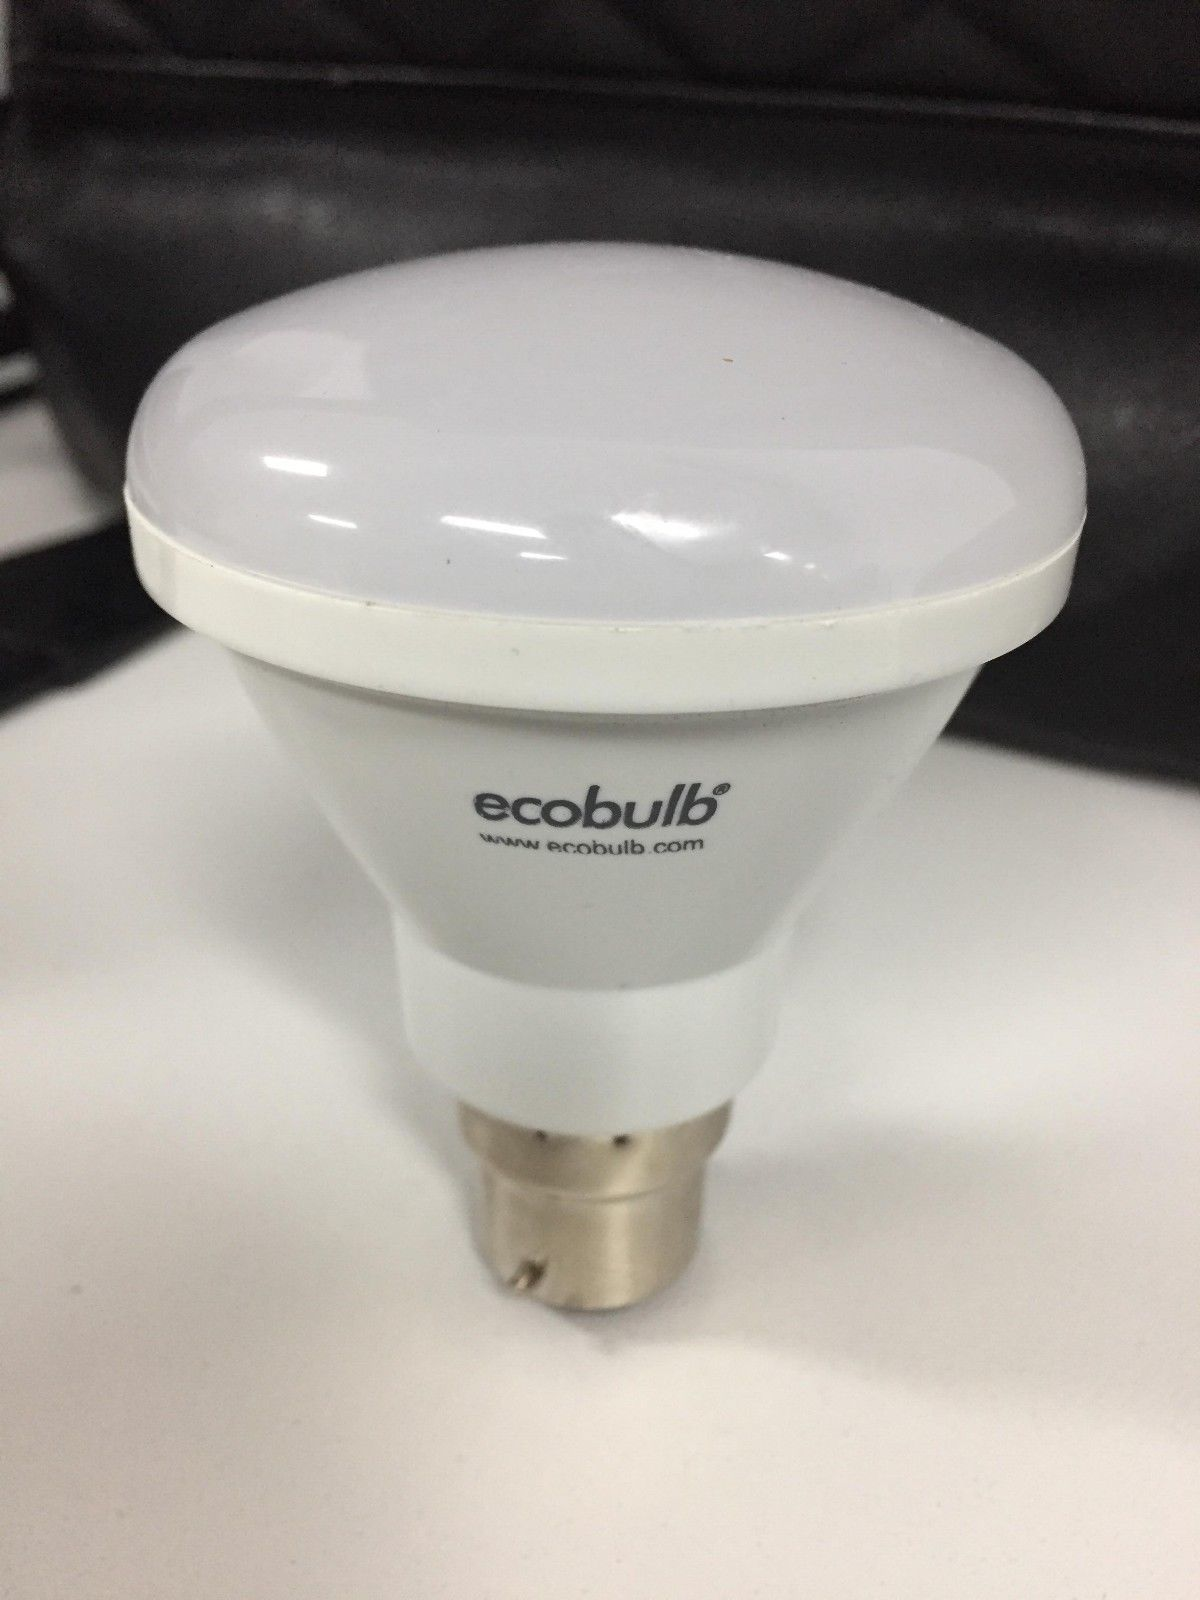 Ecobulb 8w Reflector Light Unpackaged